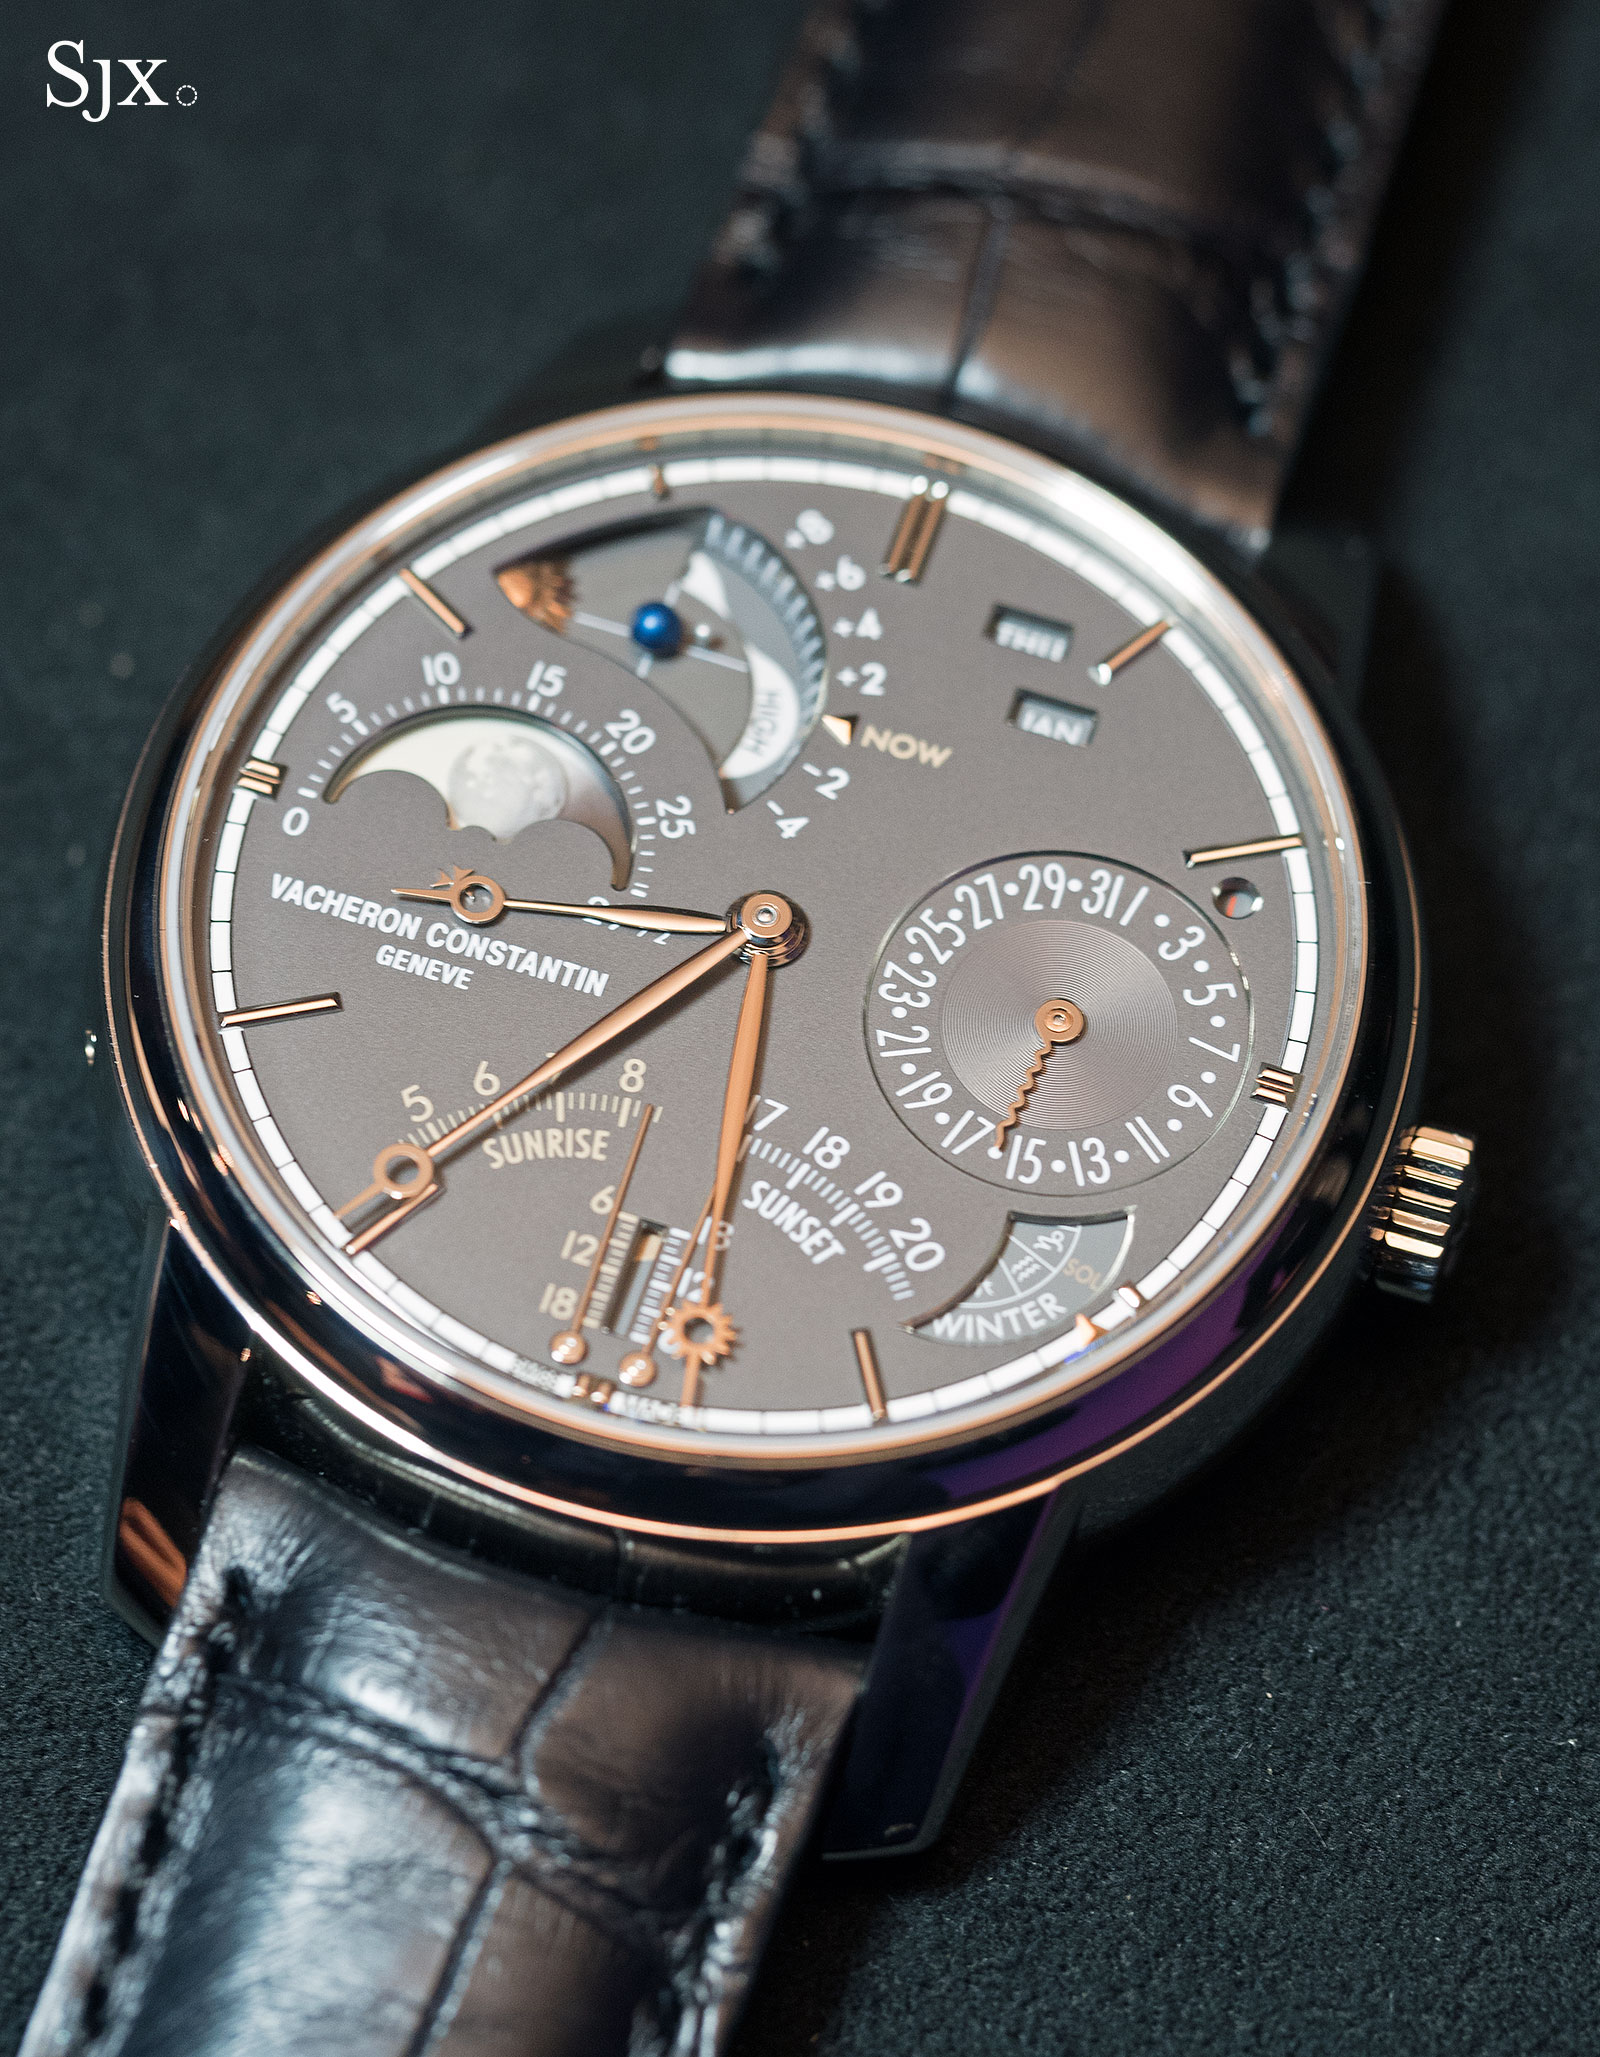 Vacheron Constantin Celestia Astronomical Grand Complication 1